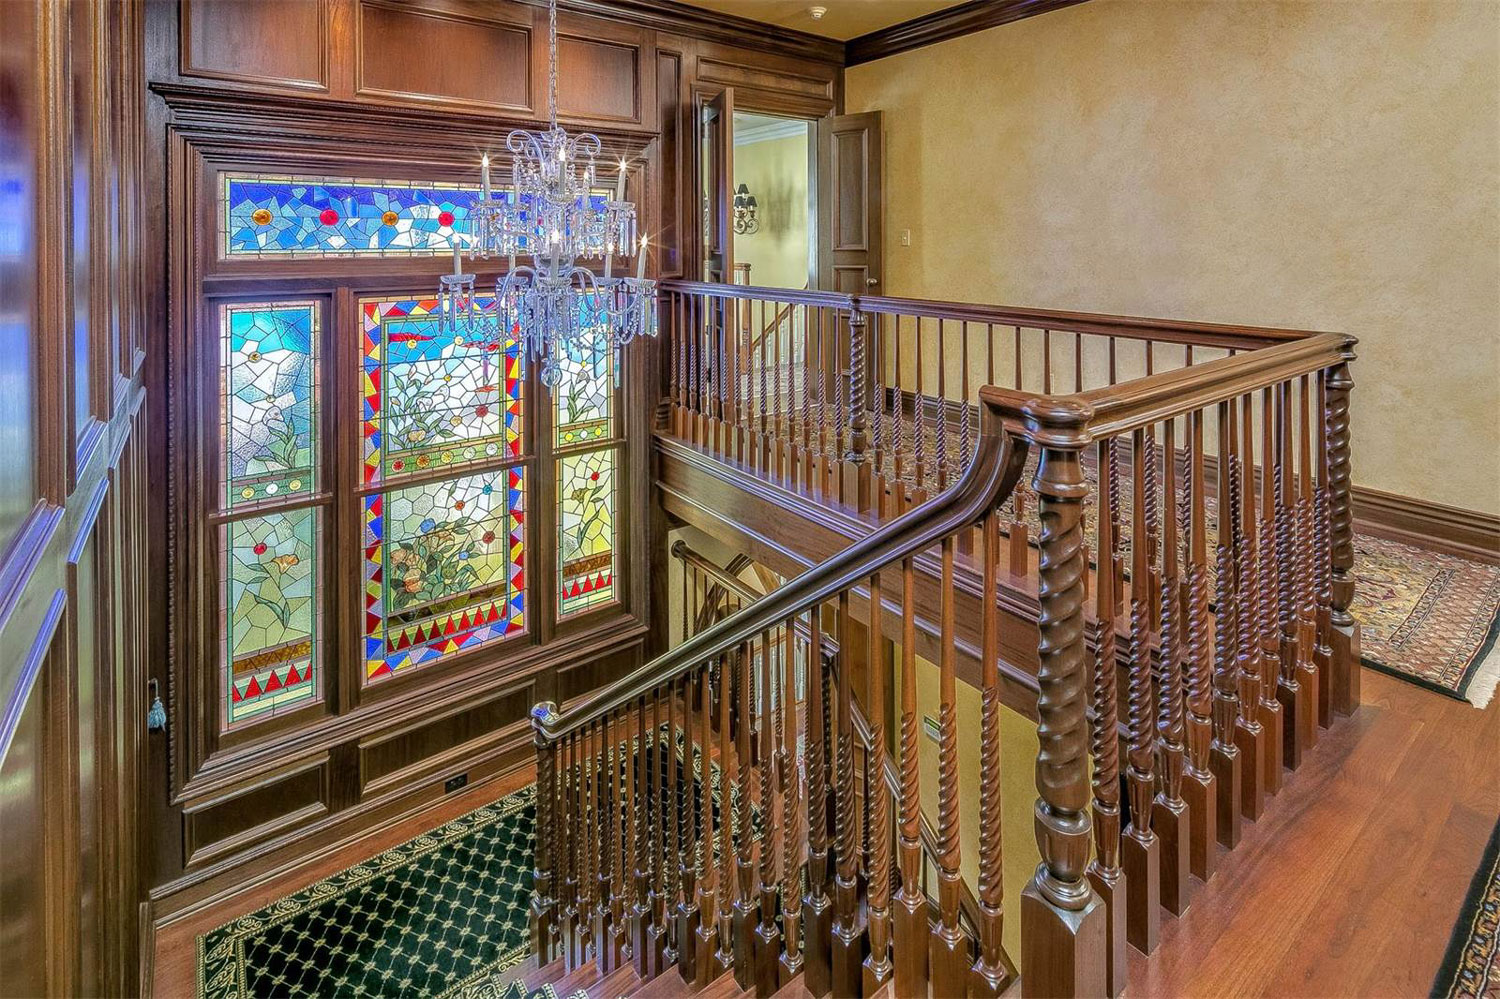 A grand staircase with a 19th-century stained-glass window is one of the many decorative art forms that grace the Victorian-Revival manor house at Hidden Meadow Farm.